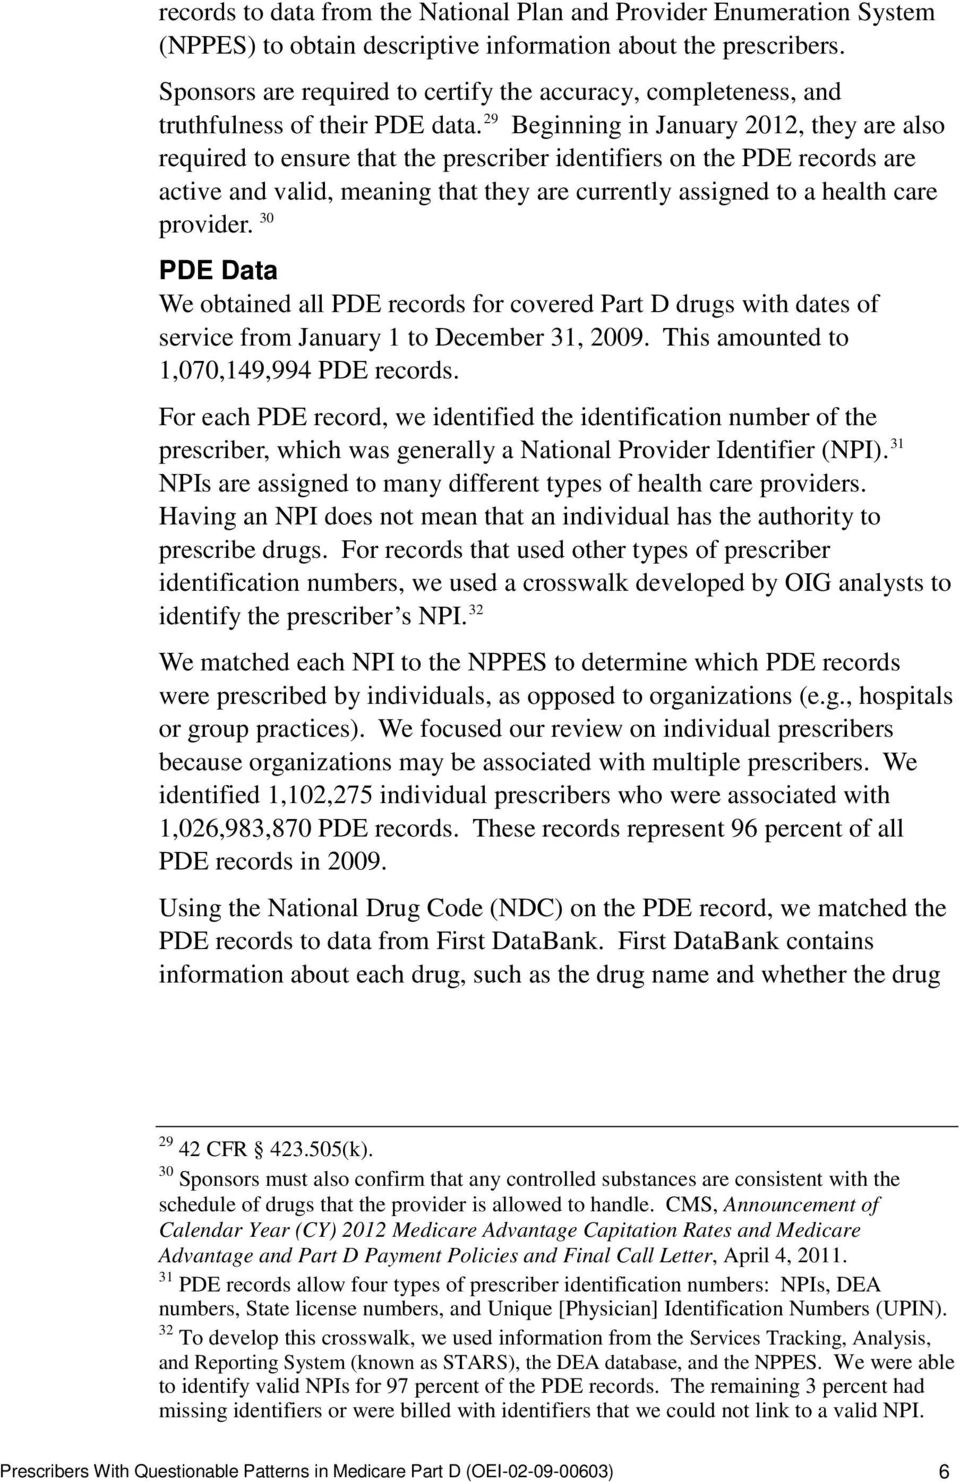 29 Beginning in January 2012, they are also required to ensure that the prescriber identifiers on the PDE records are active and valid, meaning that they are currently assigned to a health care